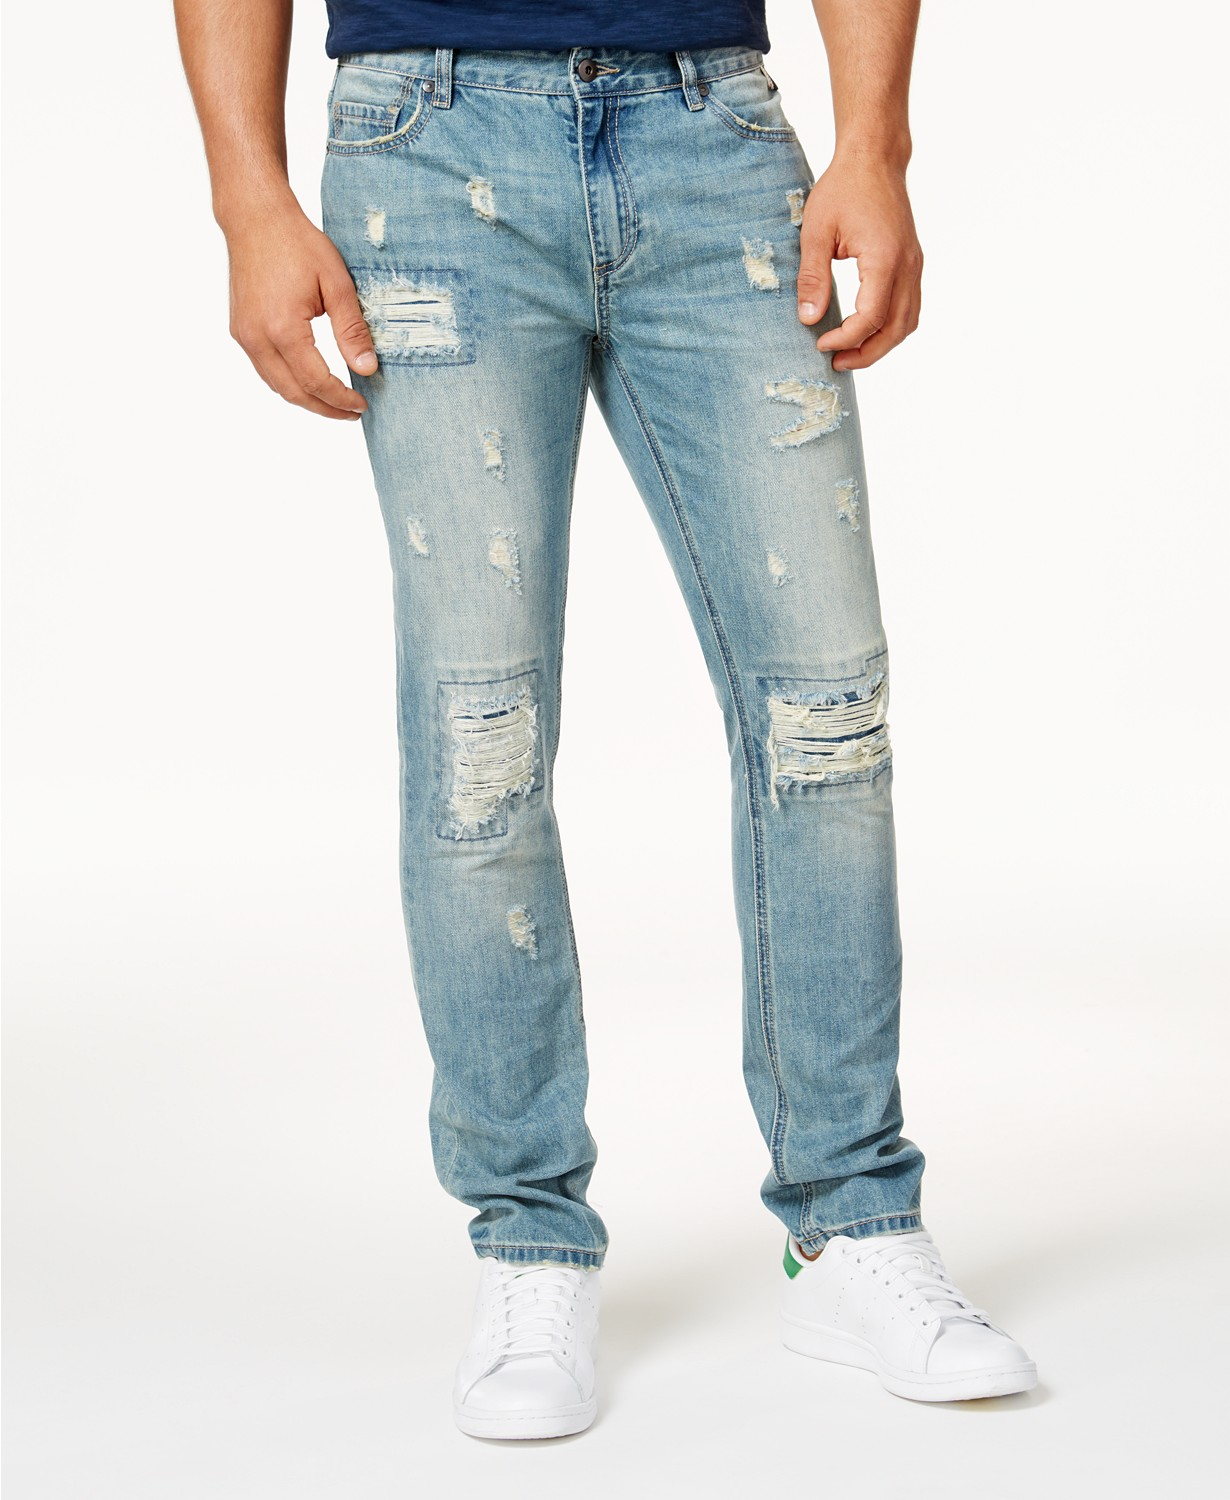 American Rag Men's Vintage Wash Distressed Jeans